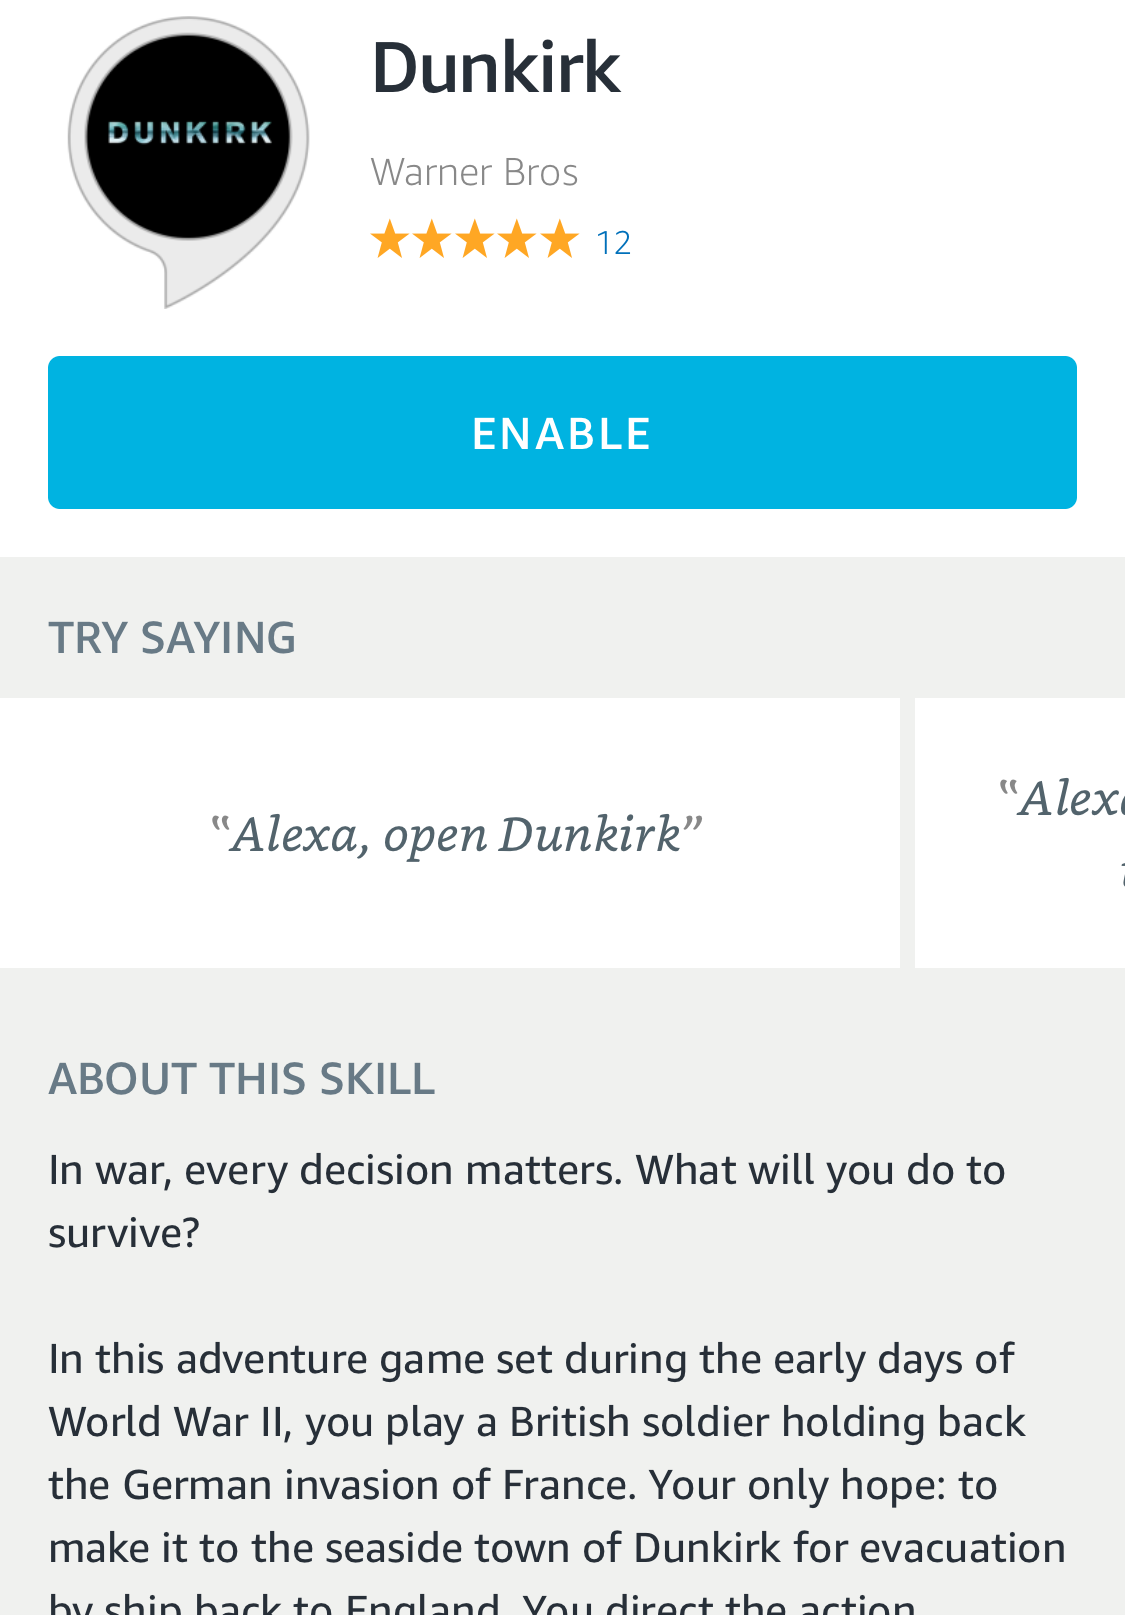 The official Dunkirk movie skill. It's a choose-your-own-adventure game based on the movie. TBH it's actually pretty cool? But also...unnecessary.